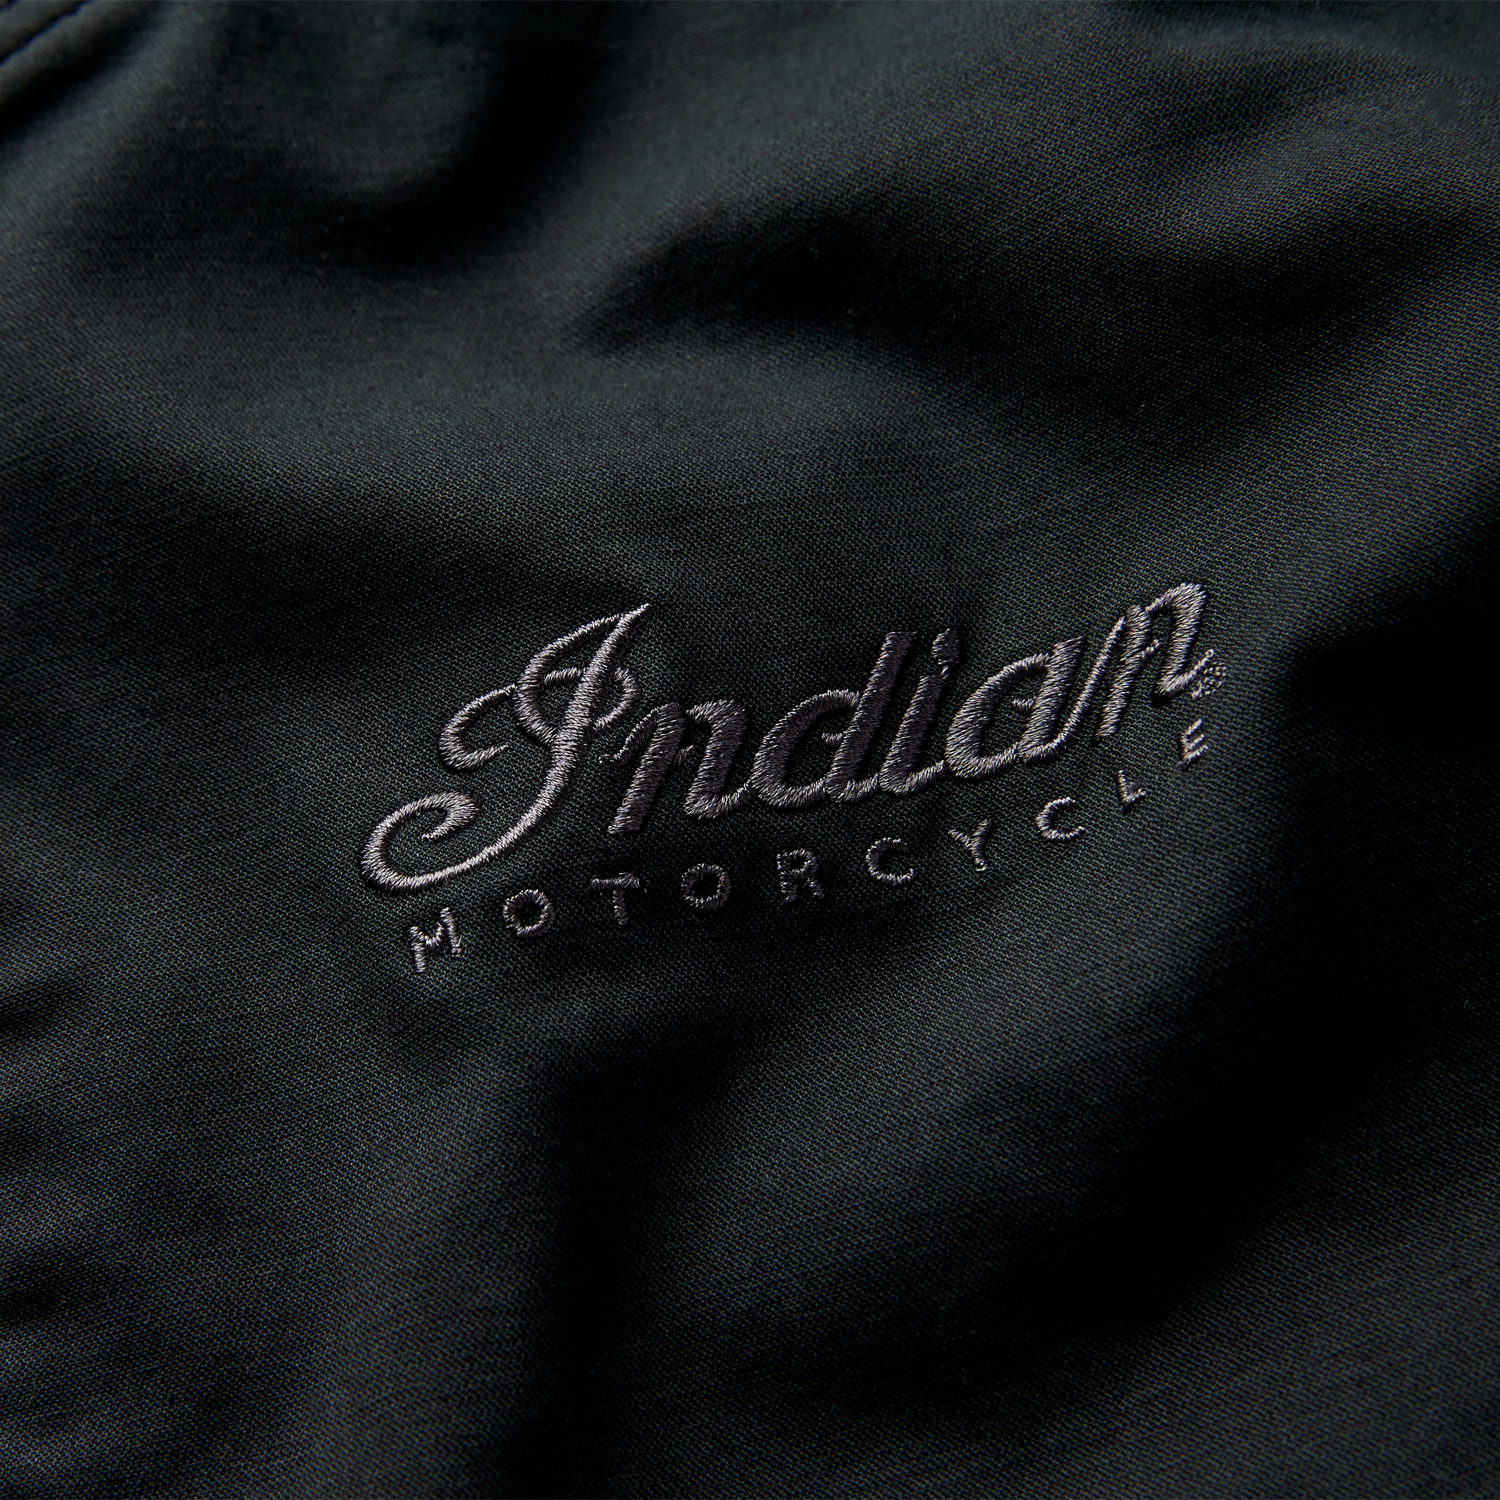 miniature 12 - Indian Motorcycle Women's Casual Bomber Jacket, Black